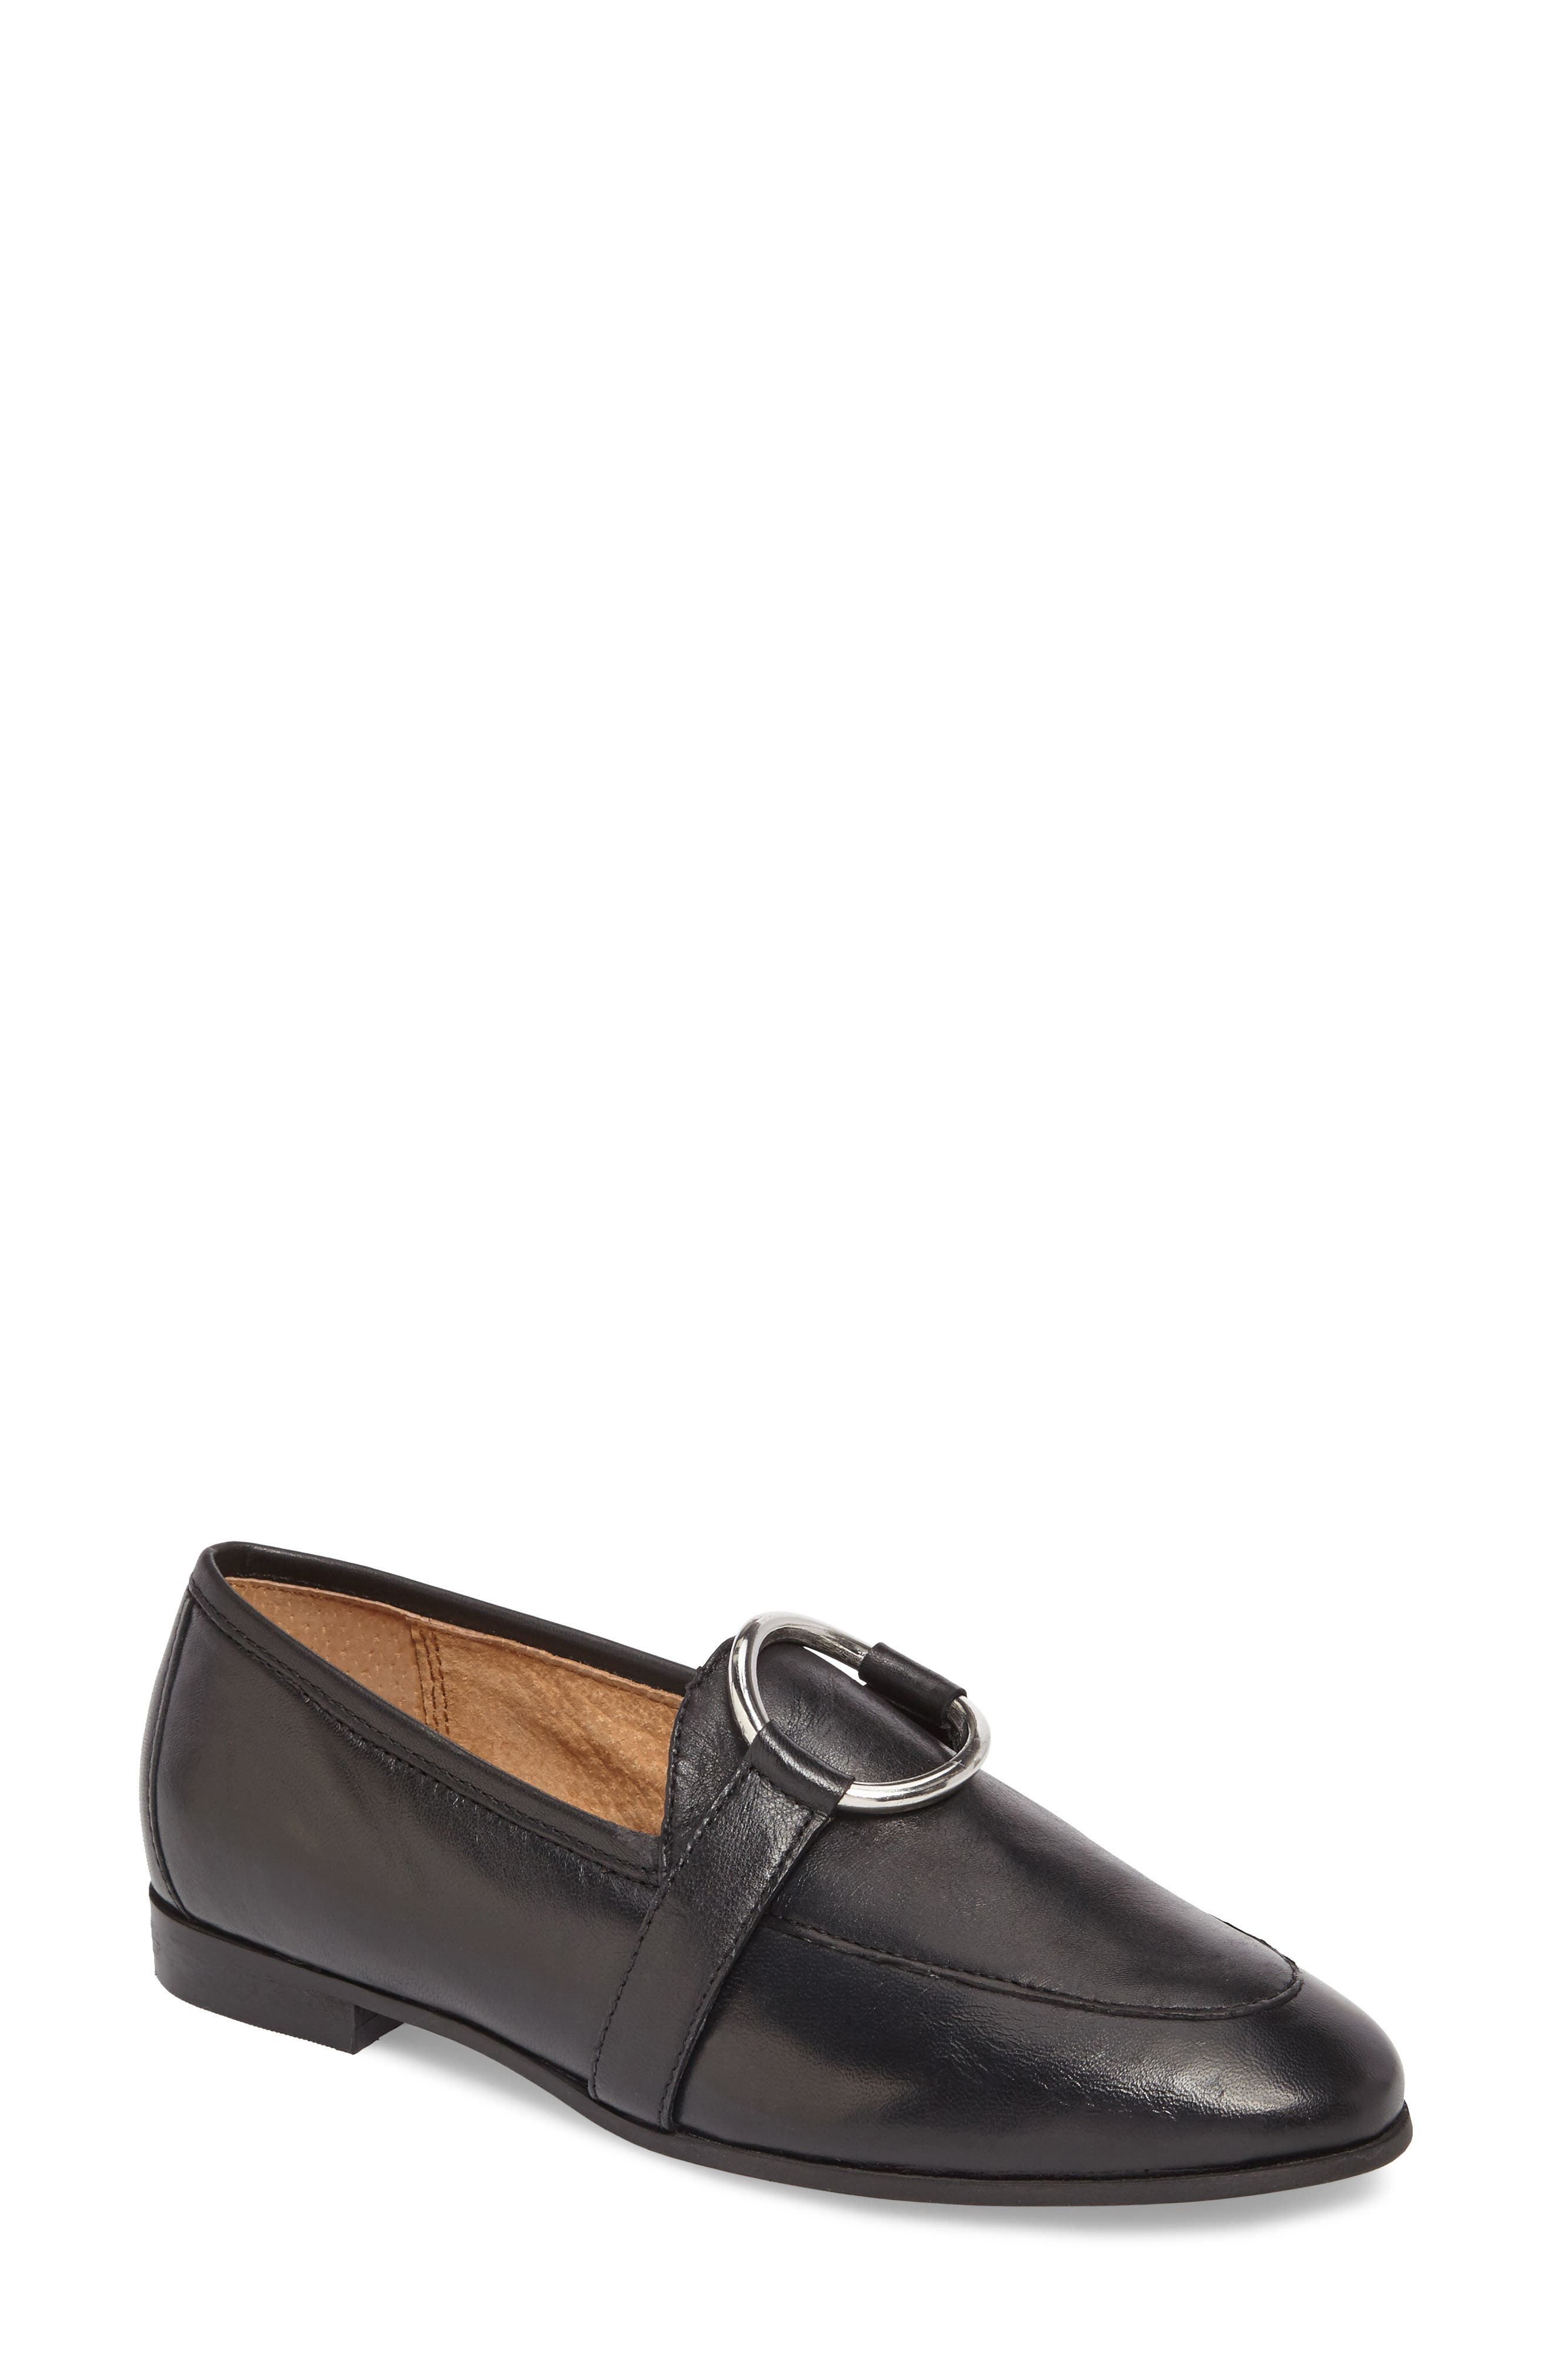 Kreme Ring Loafer,                         Main,                         color, Black